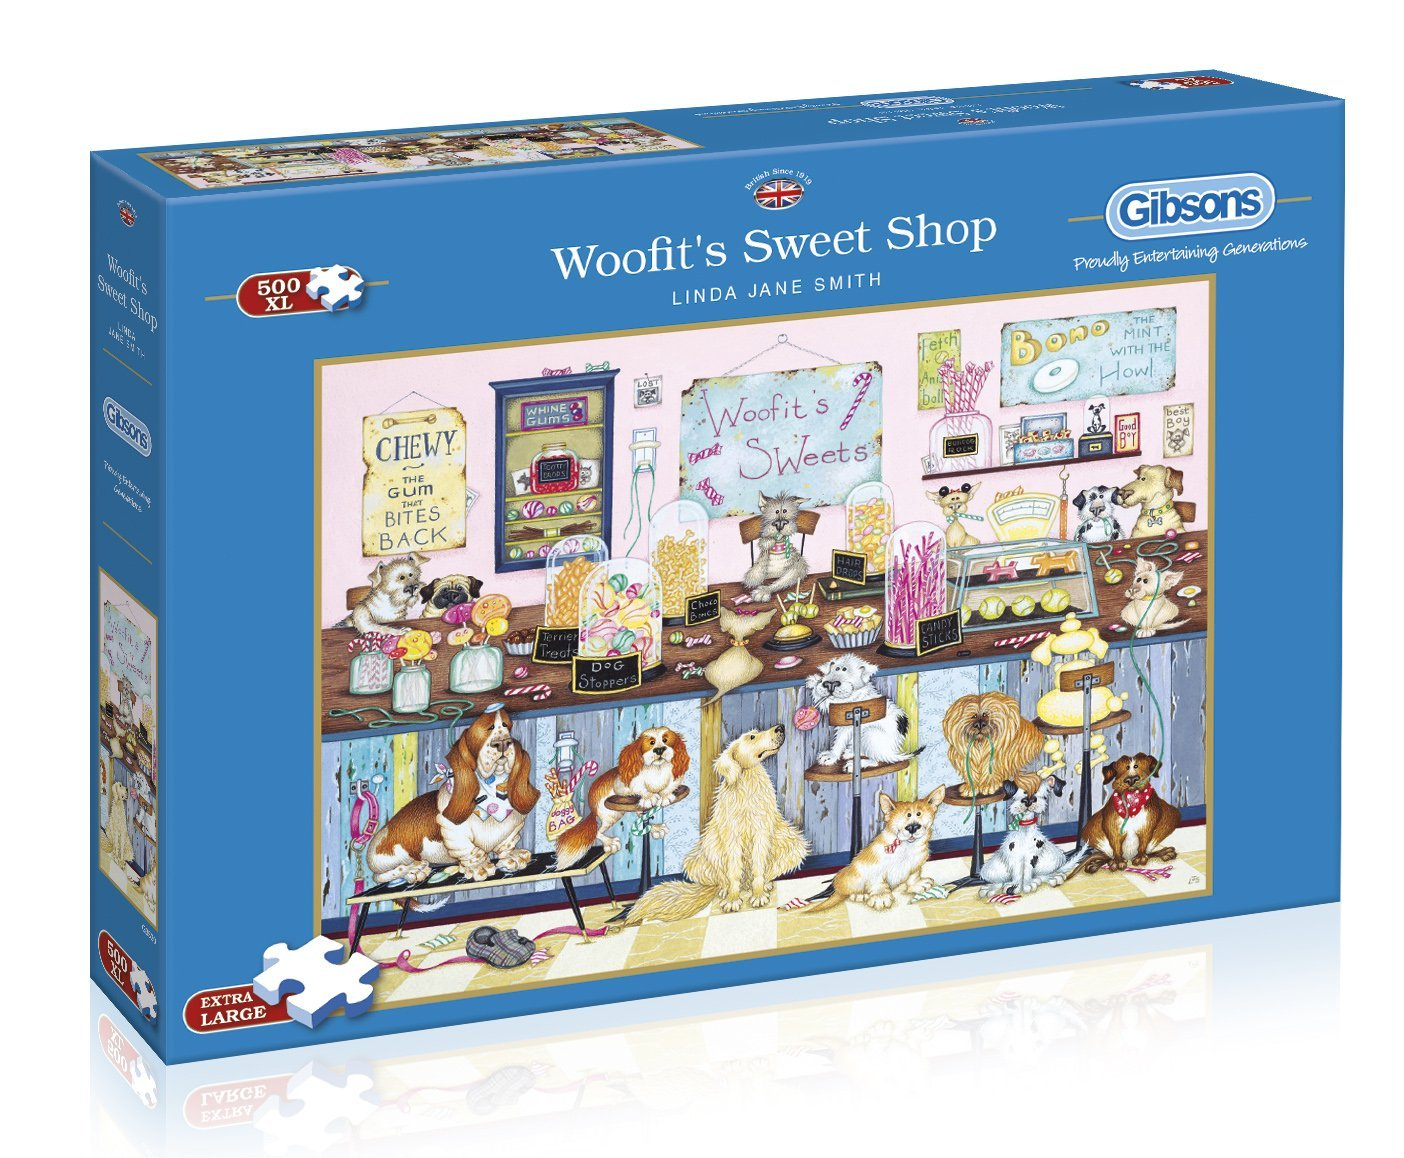 Woofit's Sweet Shop, 500 XL Puzzle